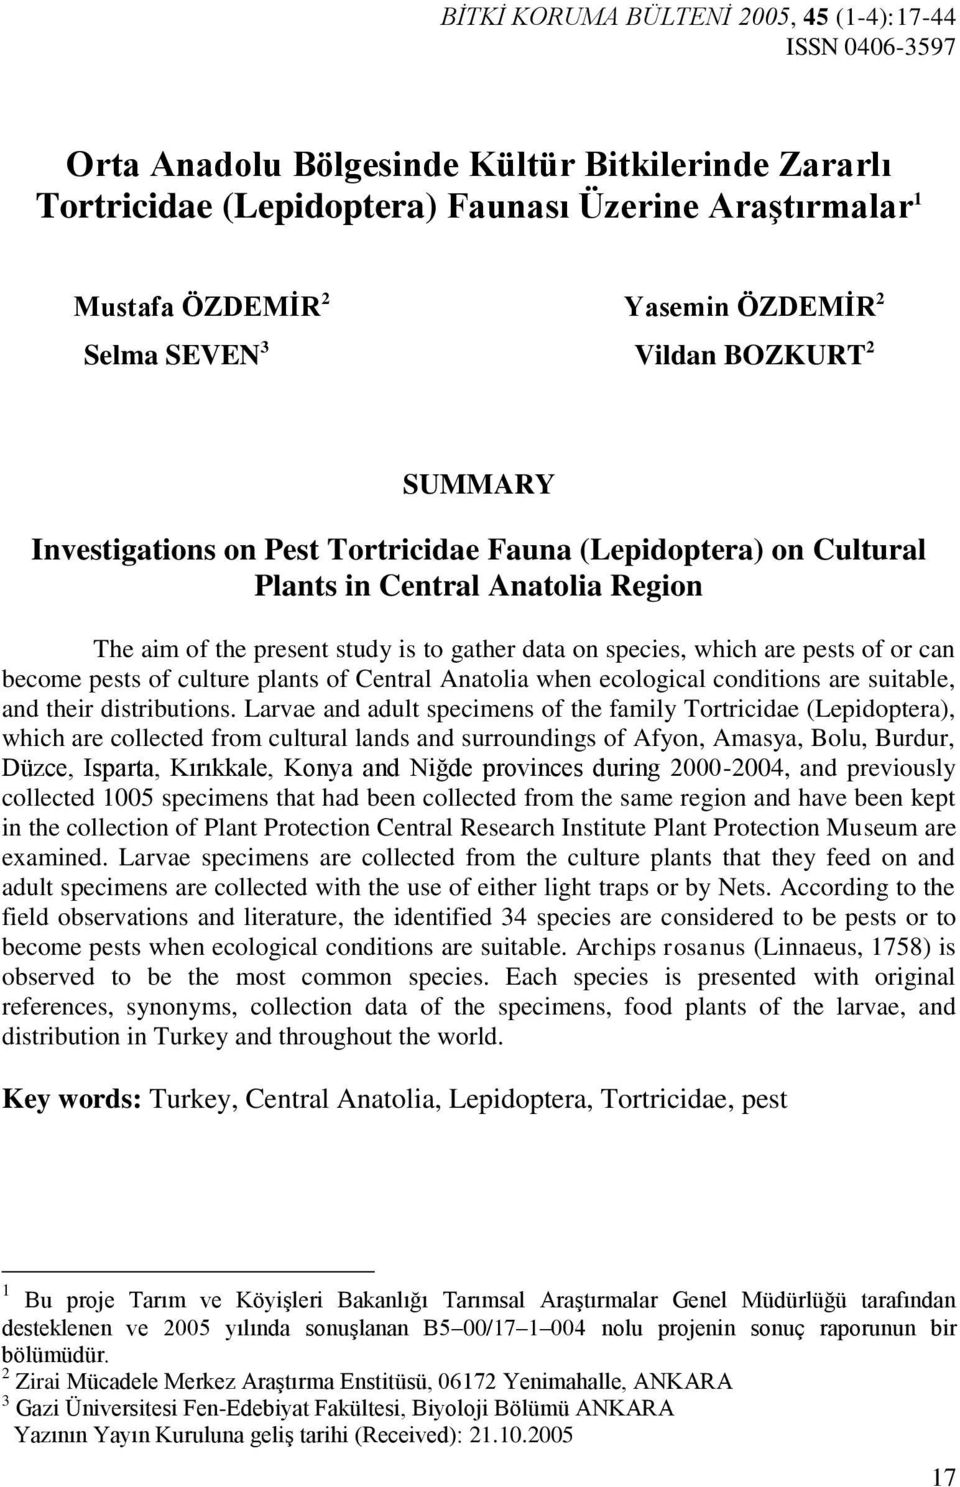 species, which are pests of or can become pests of culture plants of Central Anatolia when ecological conditions are suitable, and their distributions.